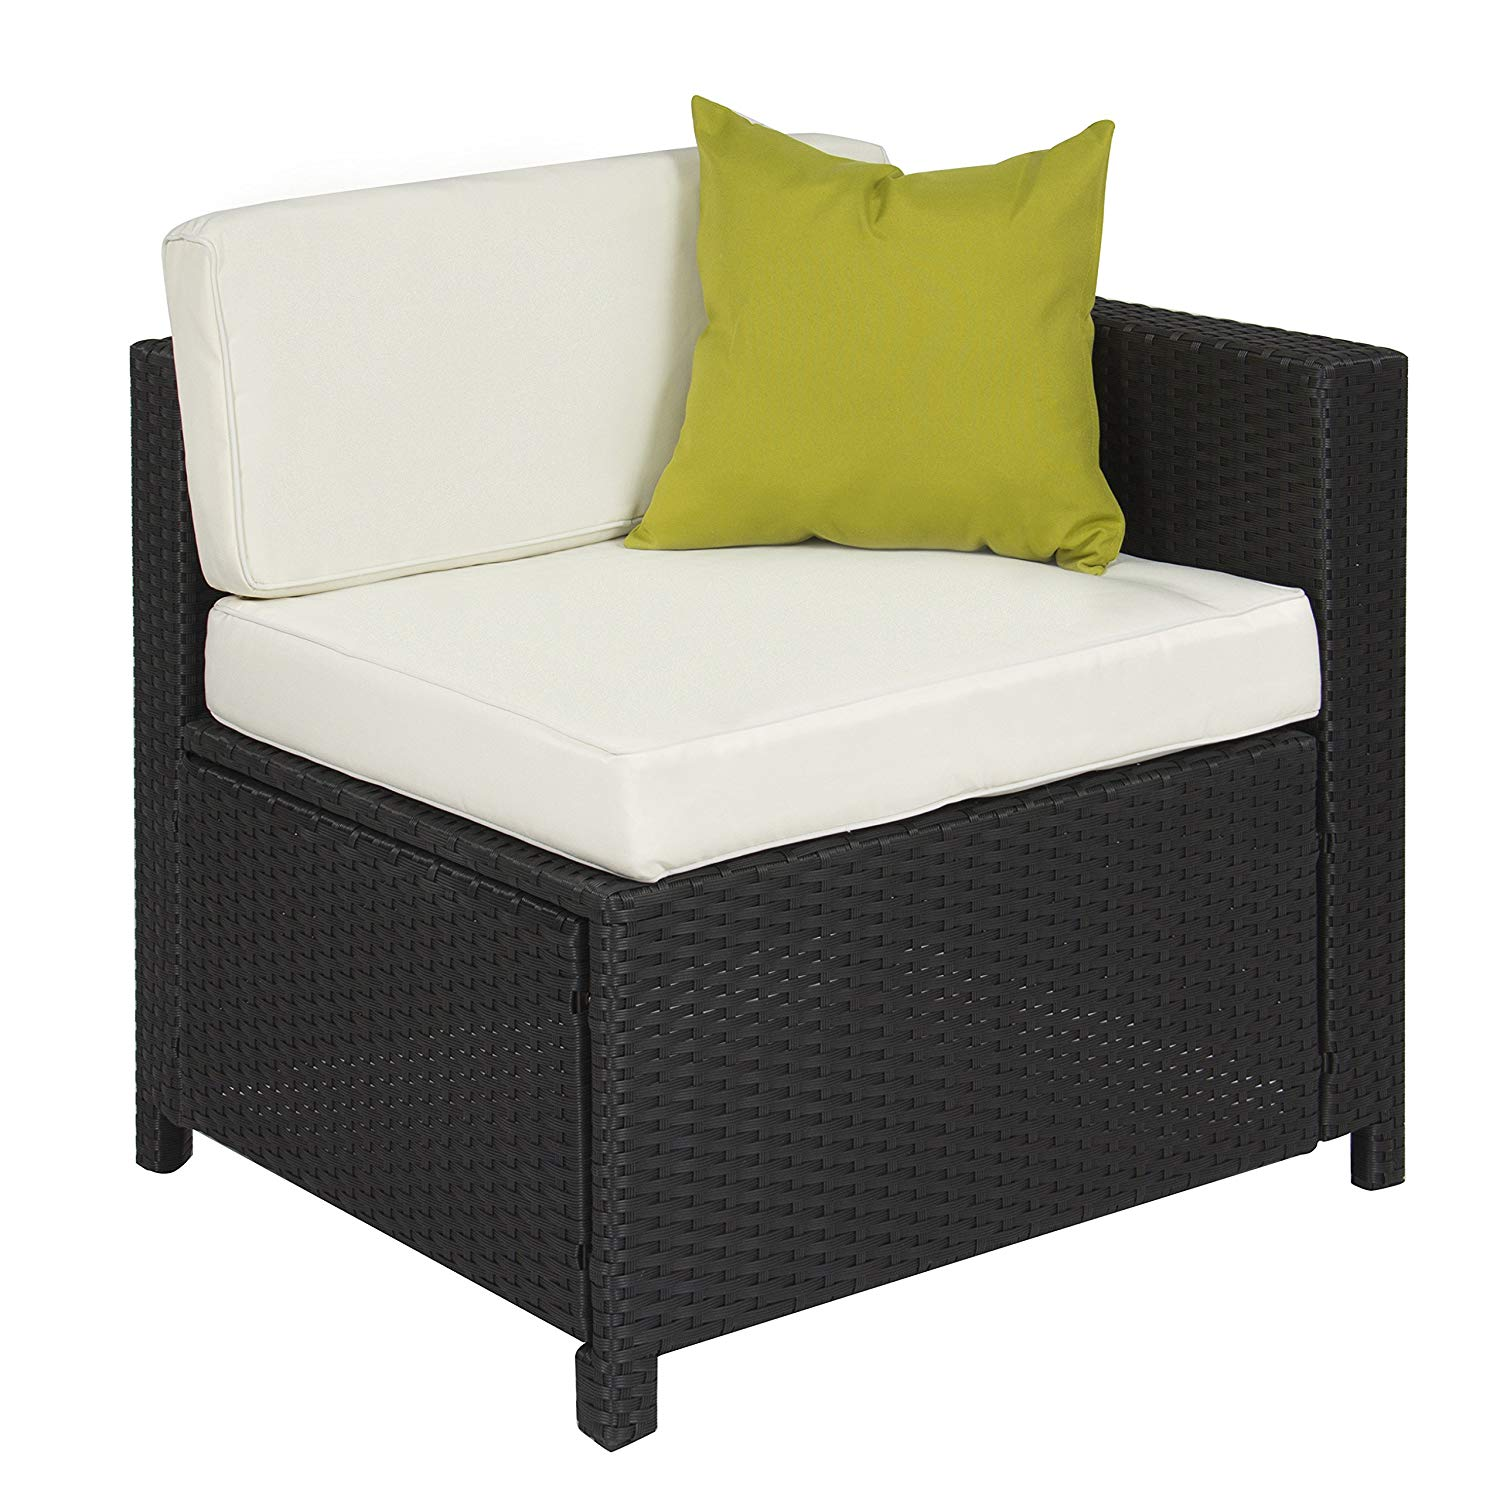 5-Piece wicker patio set